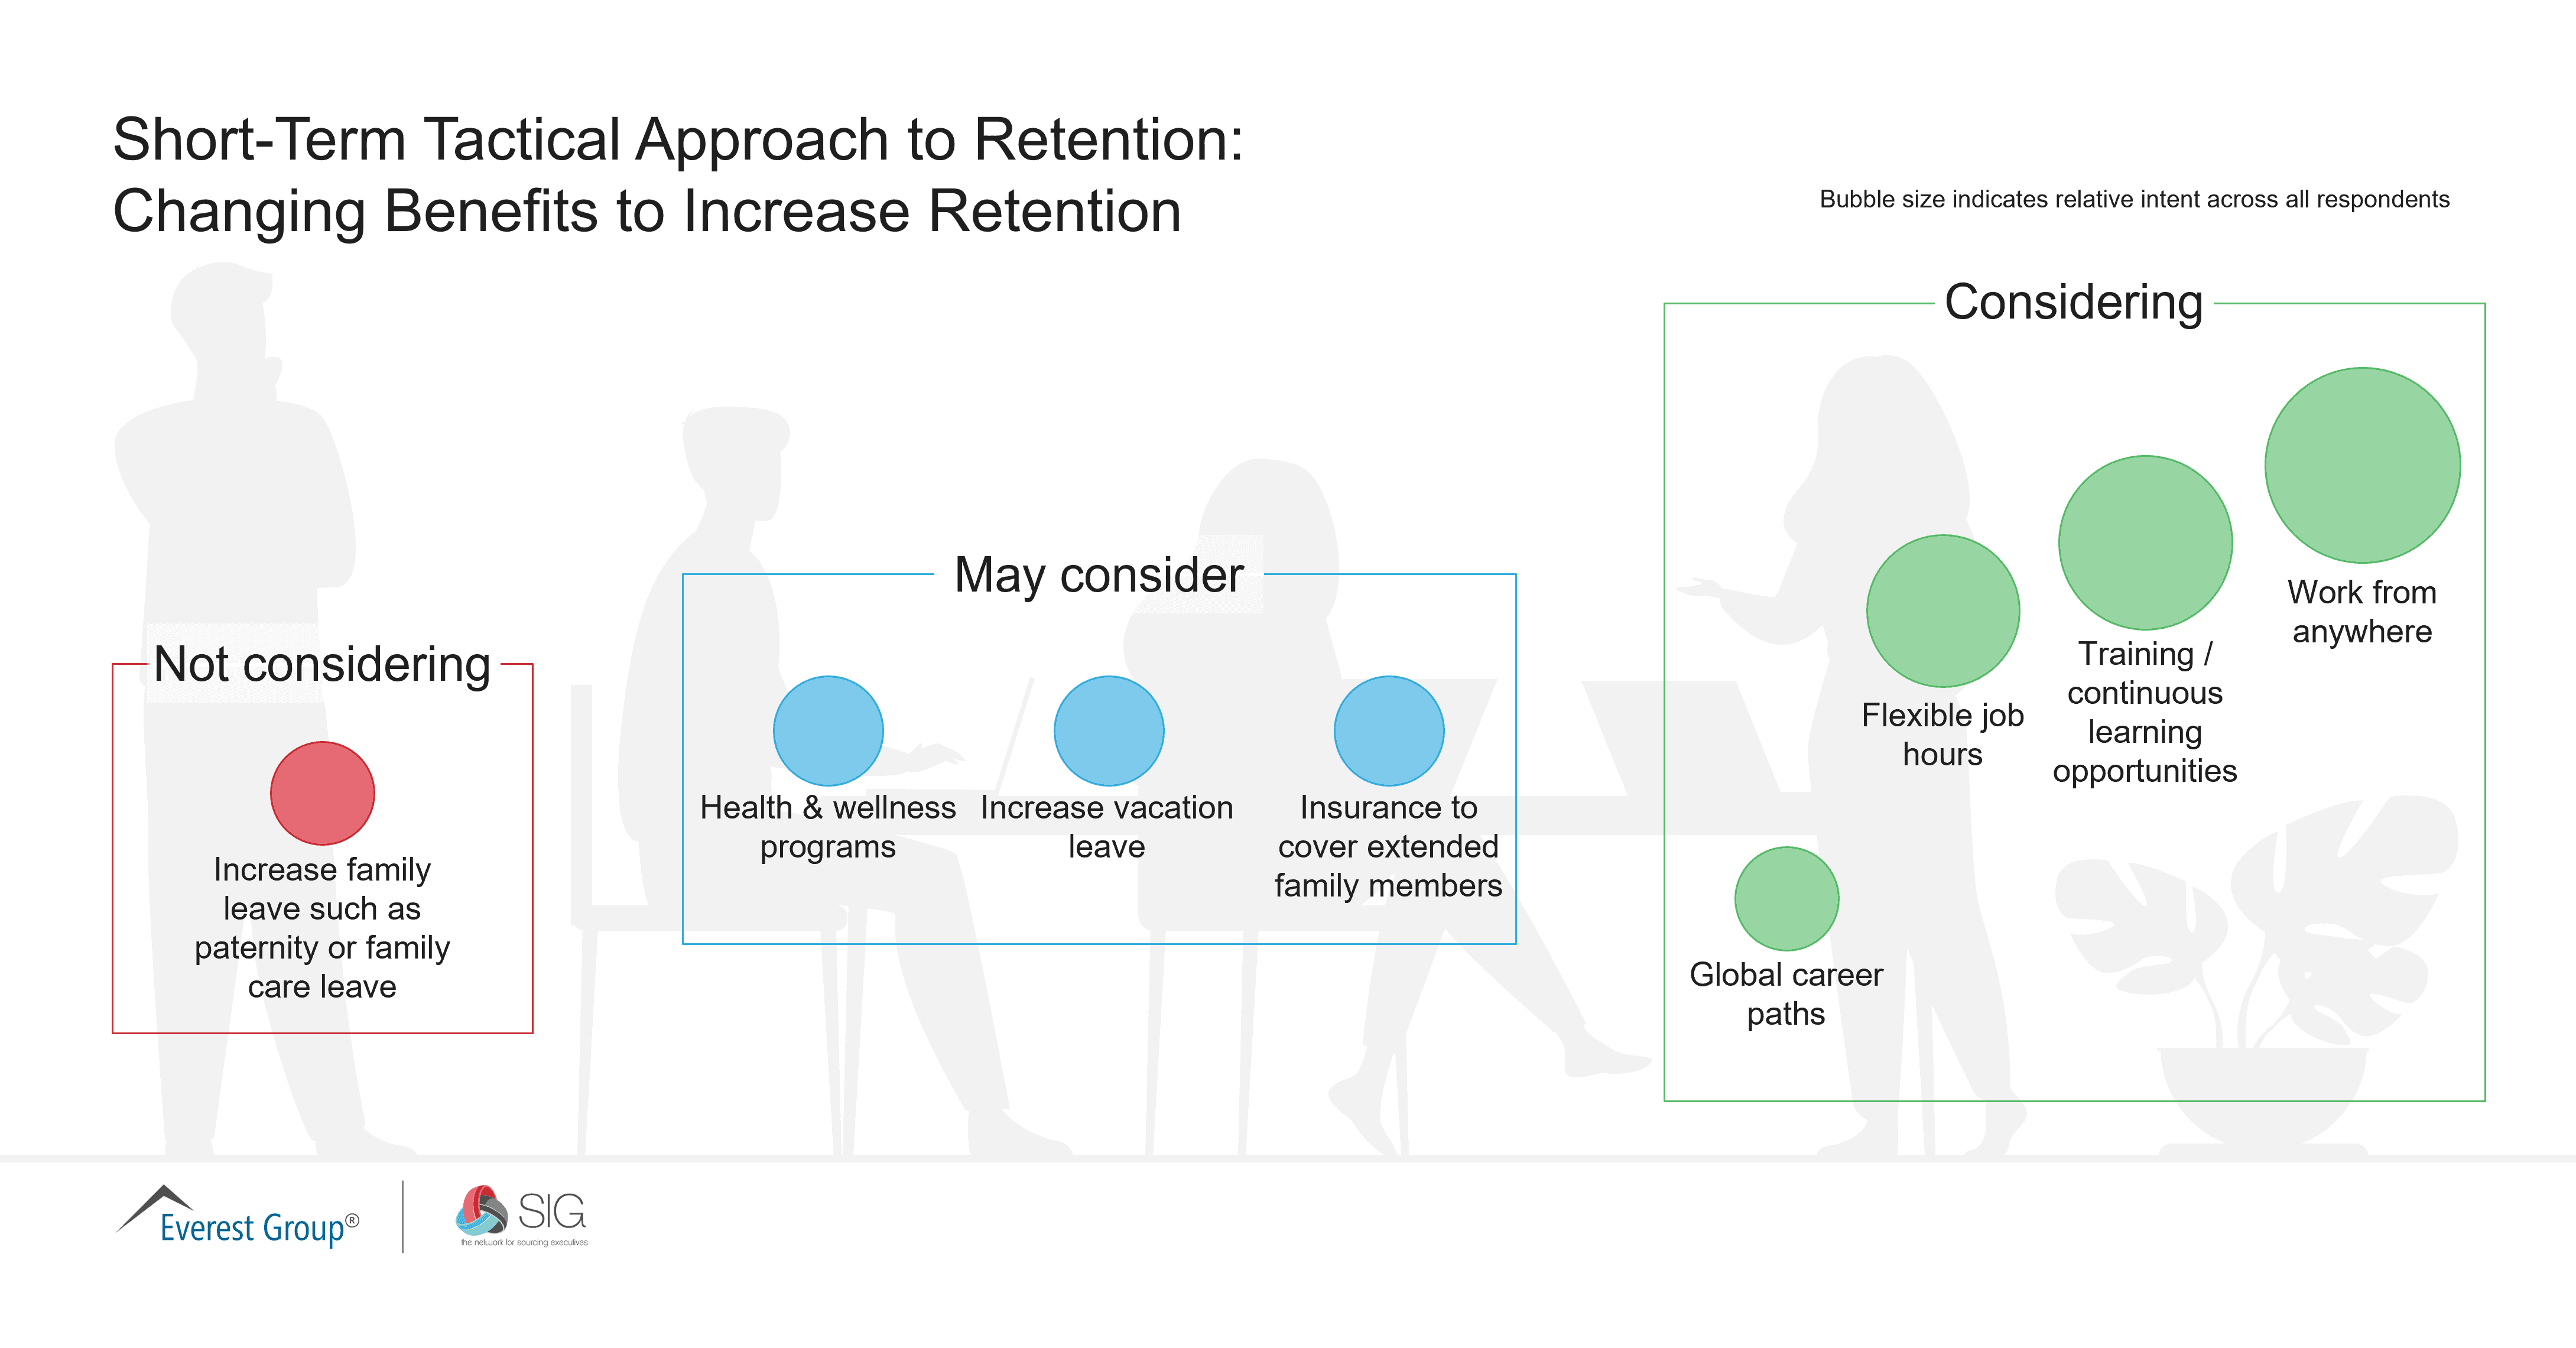 August 2021 Quick Poll_Short-Term Tactical Approach to Retention - Changing Benefits to Increase Retention